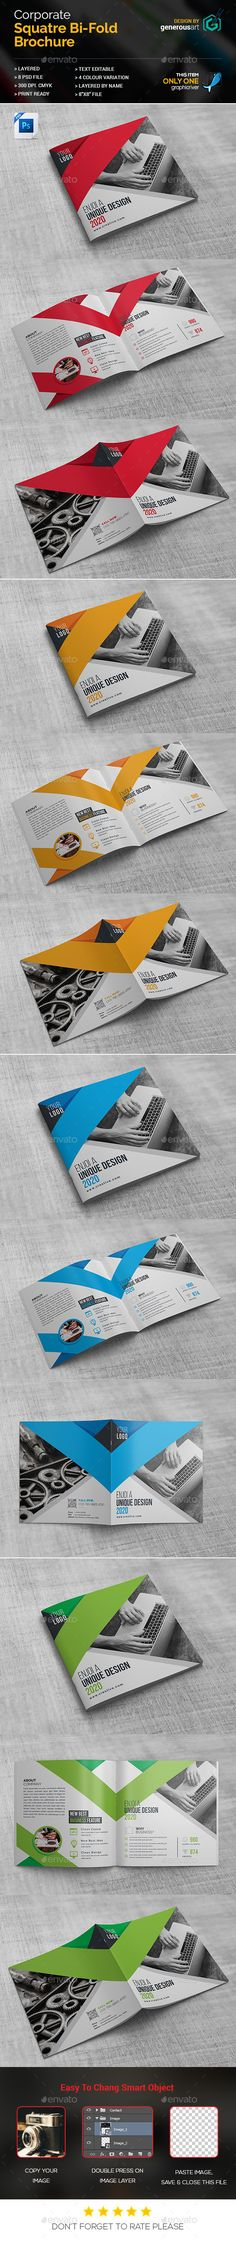 Square BiFold — Photoshop PSD #green #white • Available here → https://graphicriver.net/item/square-bifold/18383234?ref=pxcr